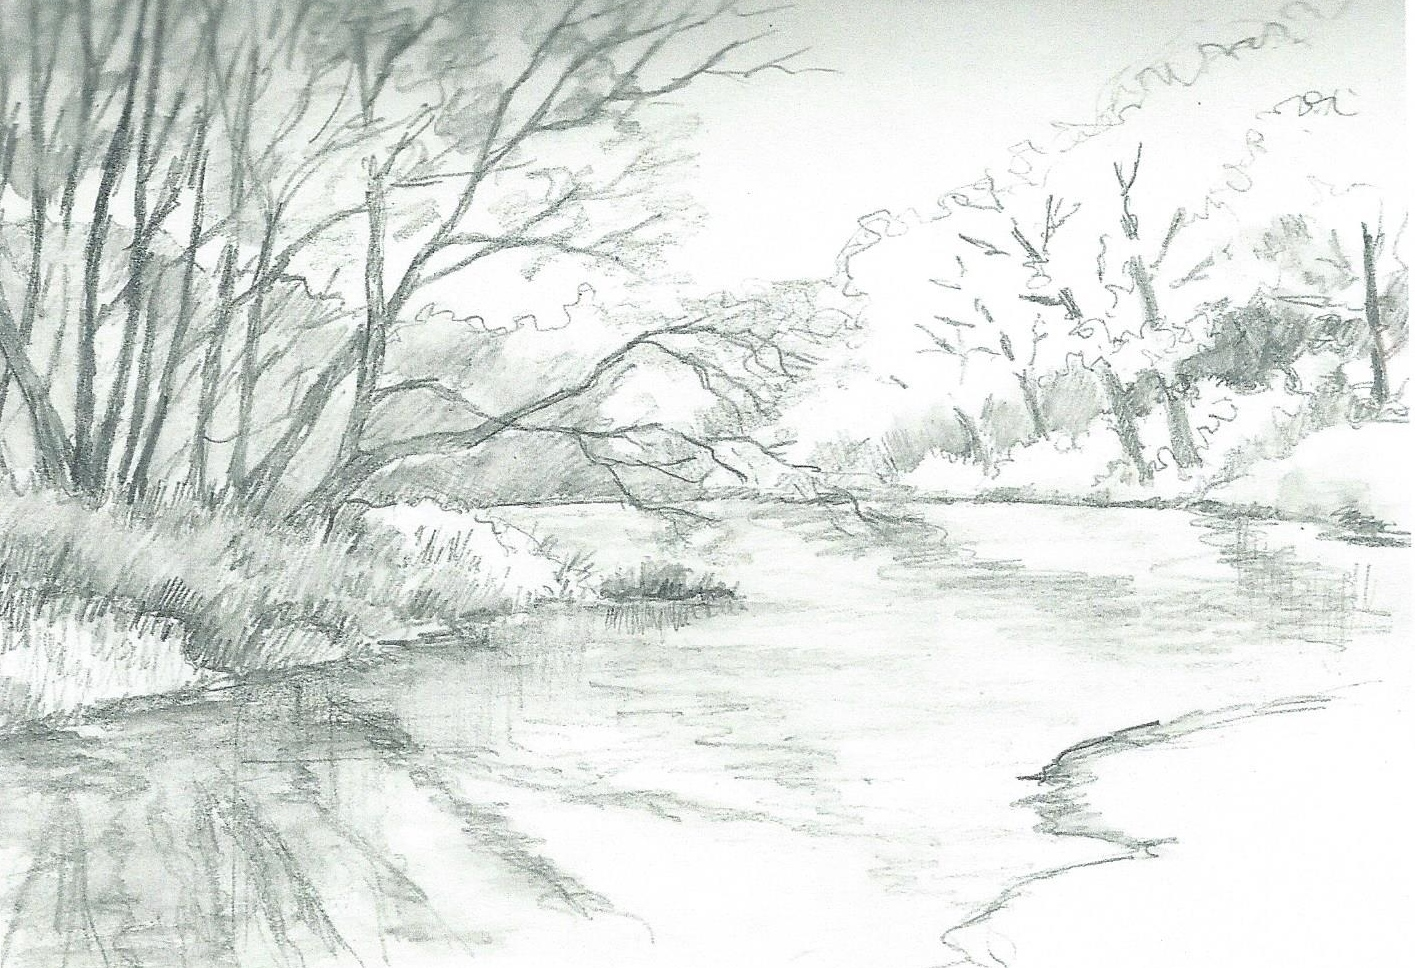 It's just a picture of Effortless Drawing Of A River